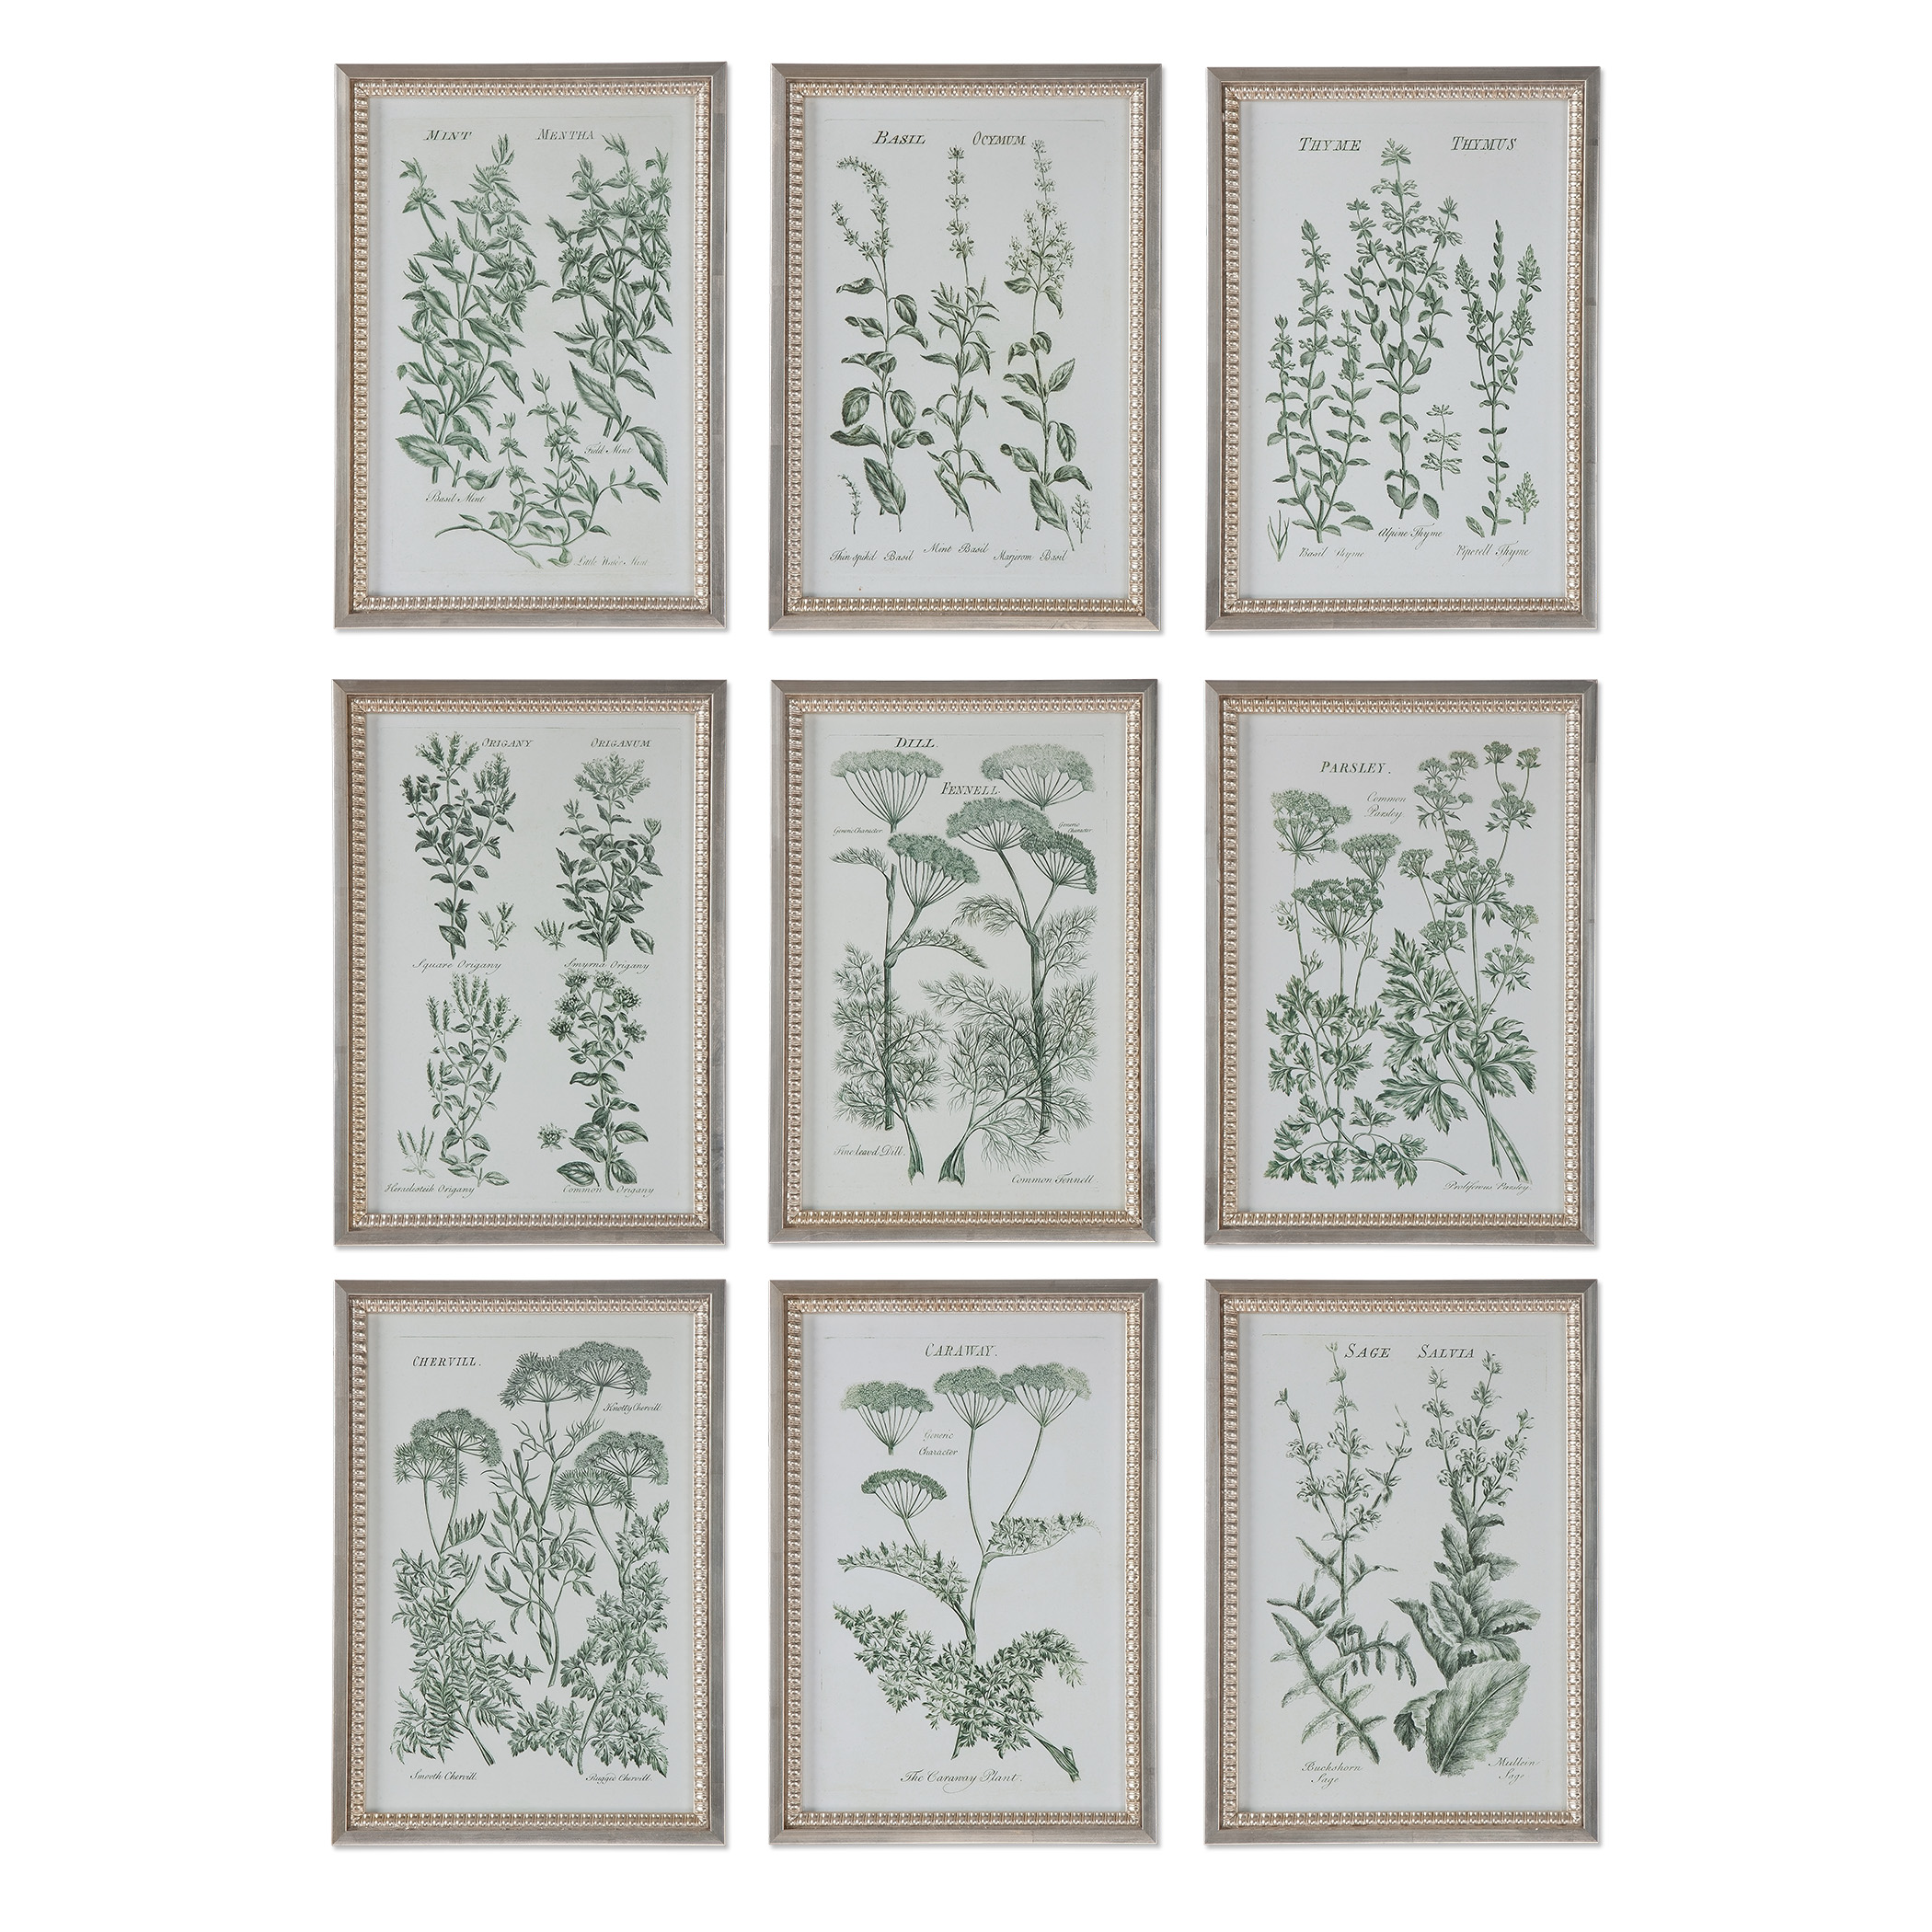 Uttermost Art Herb Garden Prints, S/9 - Item Number: 33625